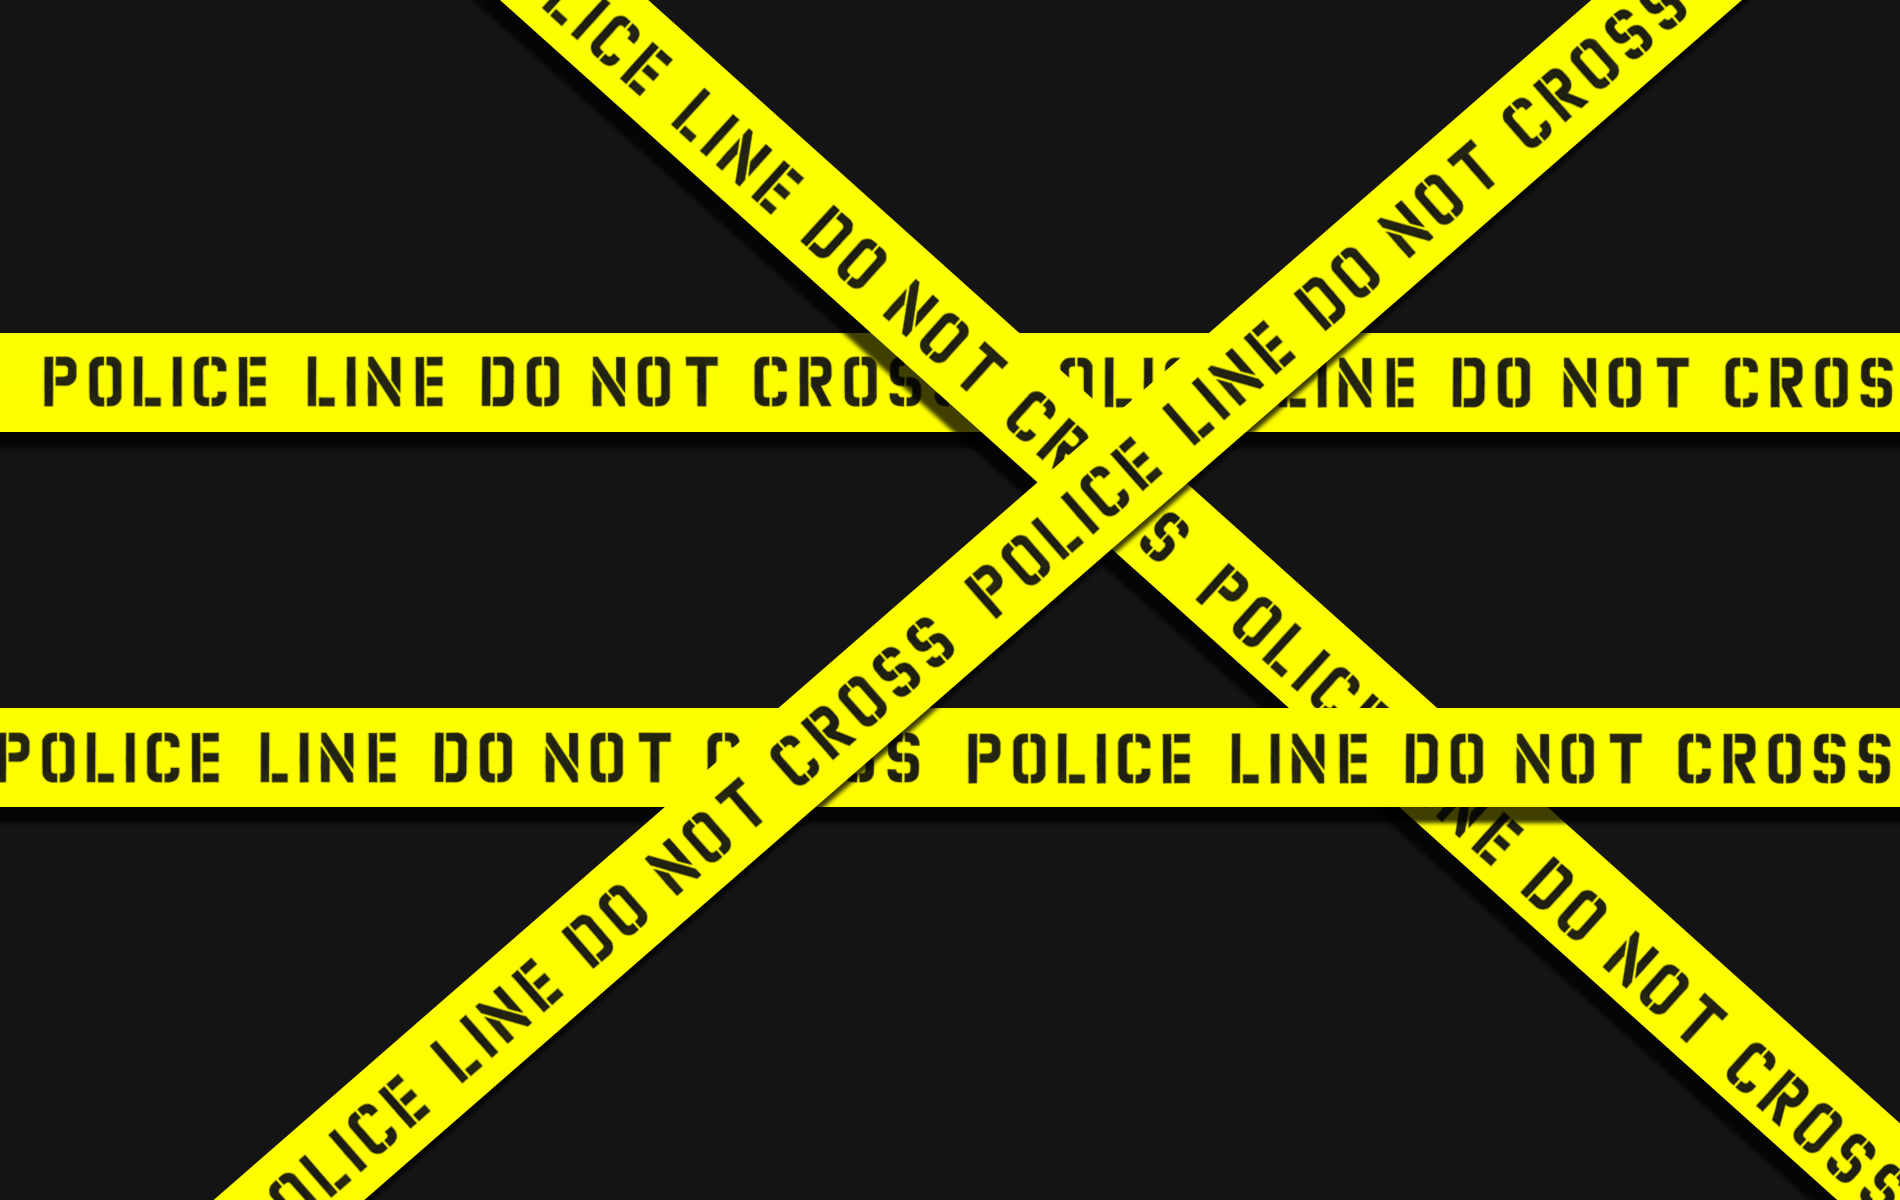 Police Line Wallpaper for Desktop - Law Enforcement PNG HD